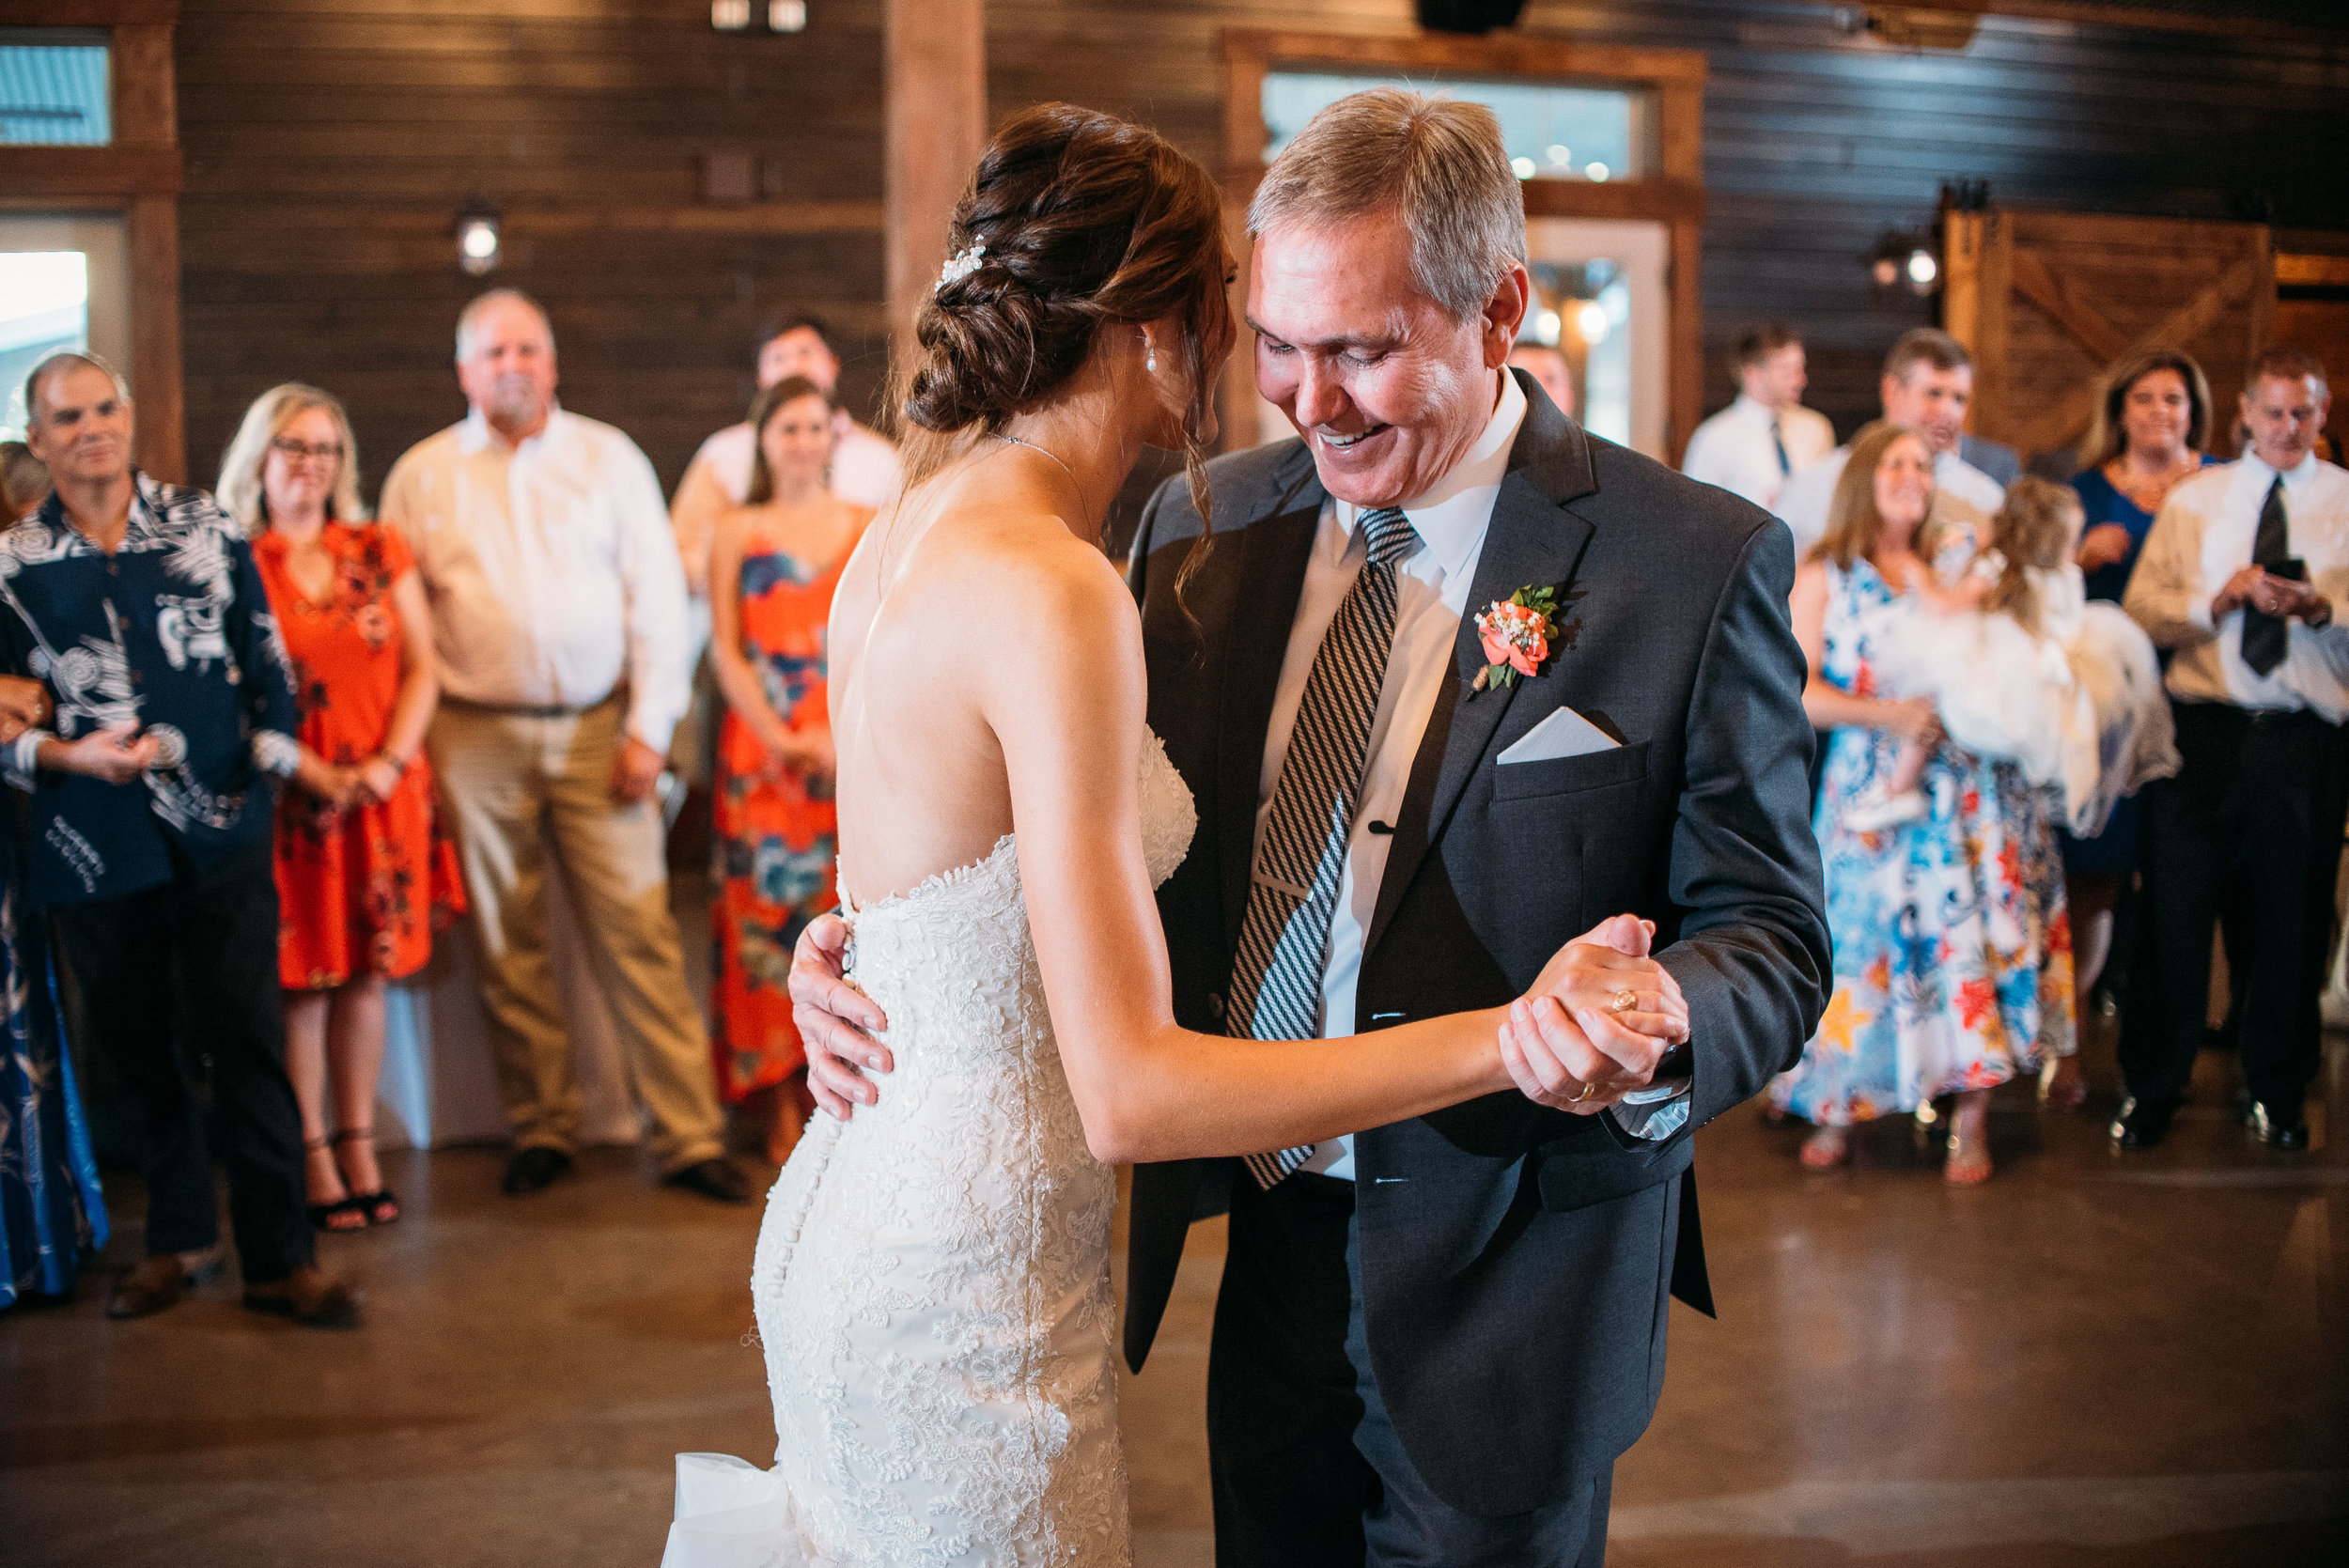 Cameron-Price-Peach-Creek-Ranch-Wedding-Ceremony-Bridals-Engagement-College-Station-Photographer-Videographer-San-Angel-Photo-00-0103.jpg